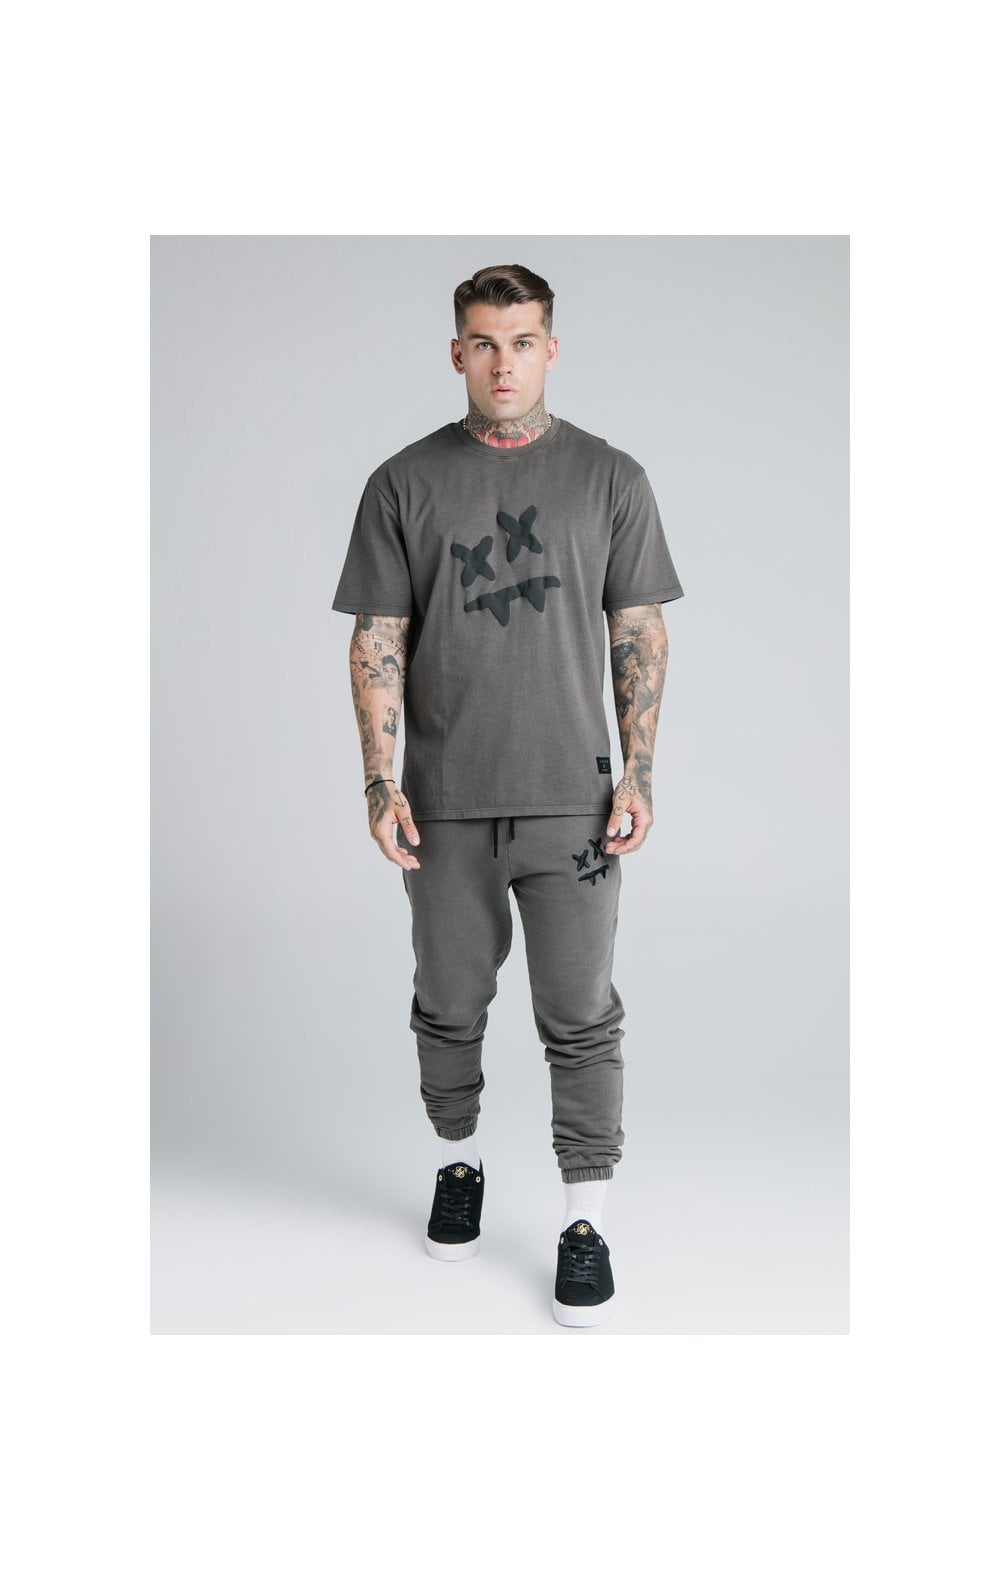 Load image into Gallery viewer, SikSilk X Steve Aoki Joggers - Washed Grey (3)